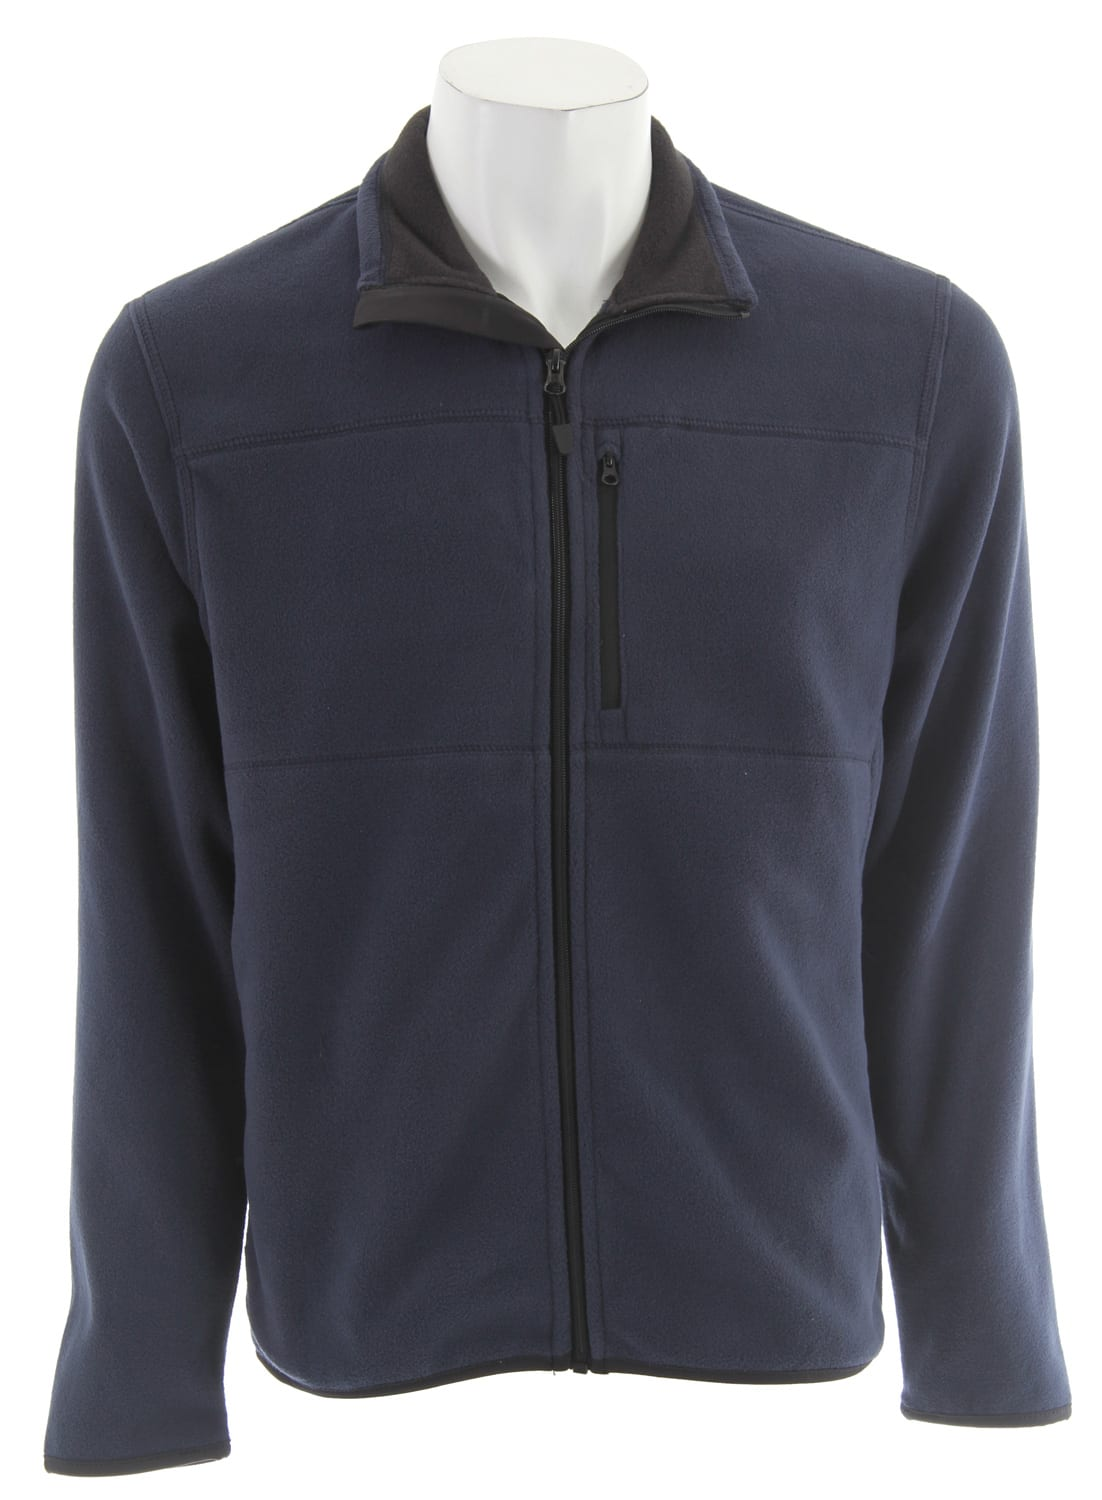 Shop for Tres Bien Arctic Fleece Navy - Men's